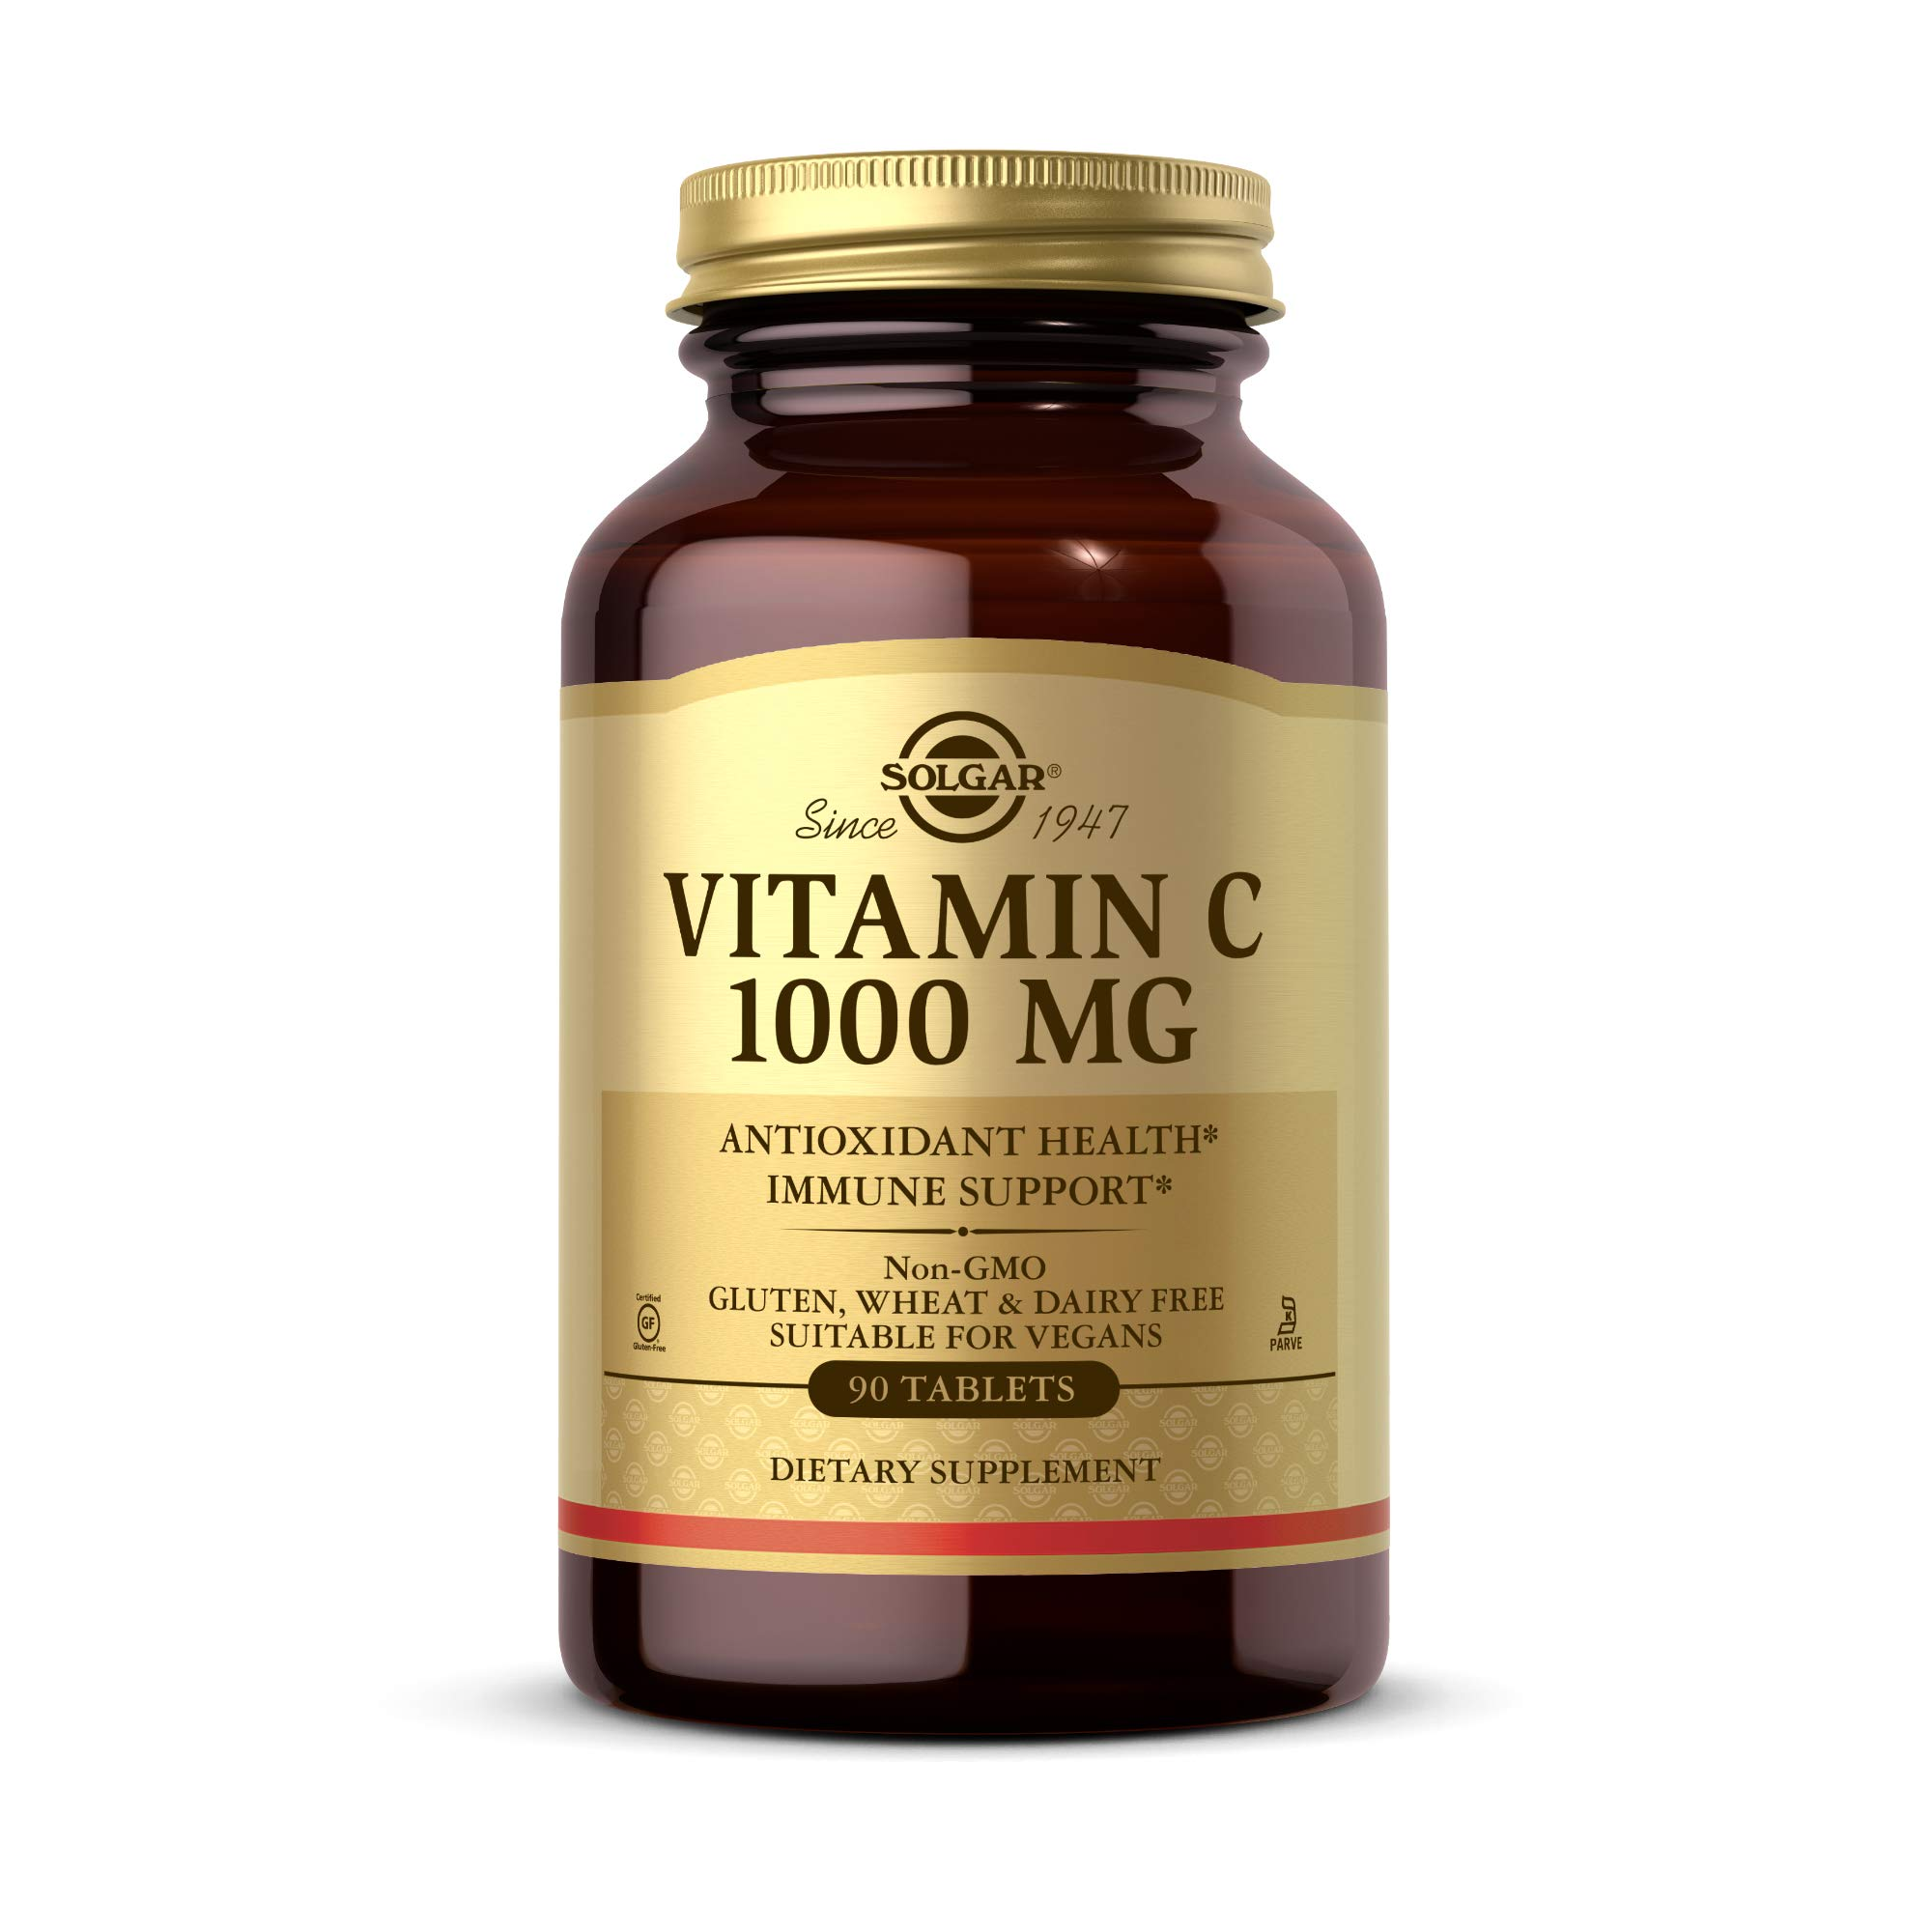 Solgar Vitamin C 1000 mg, 90 Tablets - Antioxidant & Immune Support, Overall Health, Healthy Skin & Joints - Bioflavonoids Supplement - Non-GMO, Vegan, Gluten Free, Kosher - 90 Servings